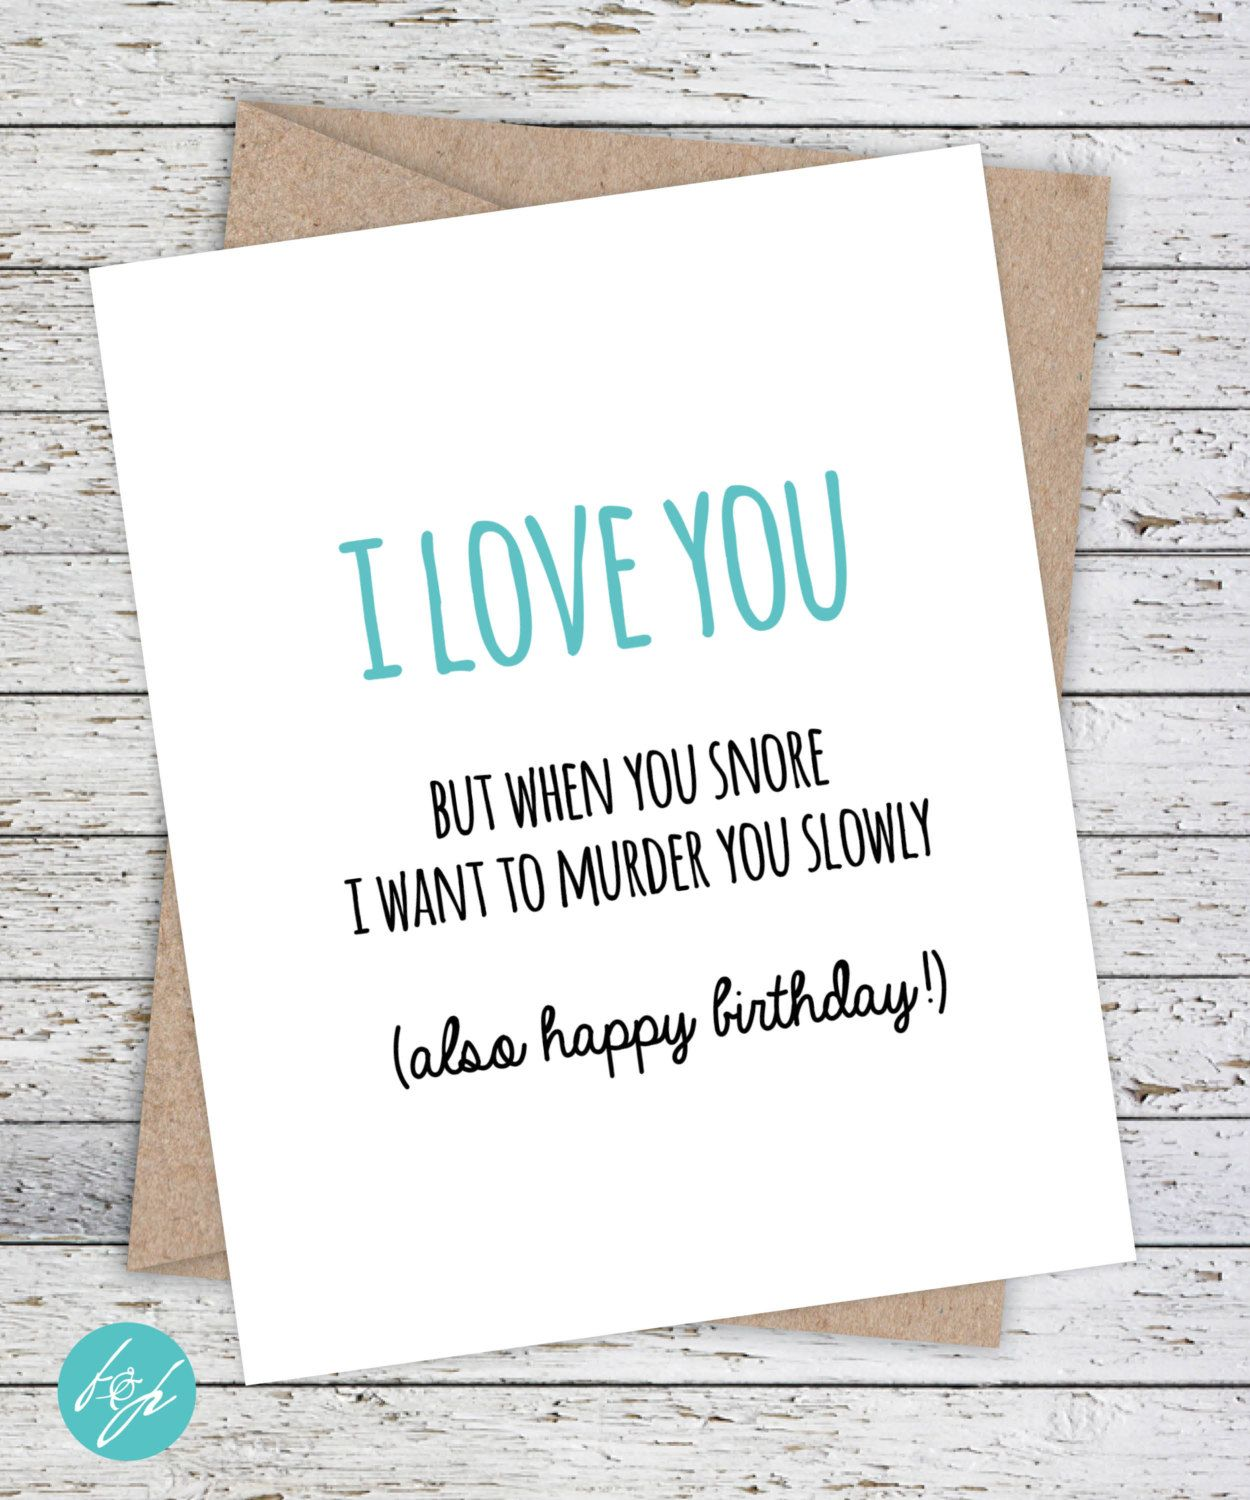 Funny Boyfriend Card Girlfriend Quirky Snarky Greeting Just For Fun I Love You But When Snore Want To Murder Slowly By FlairandPaper